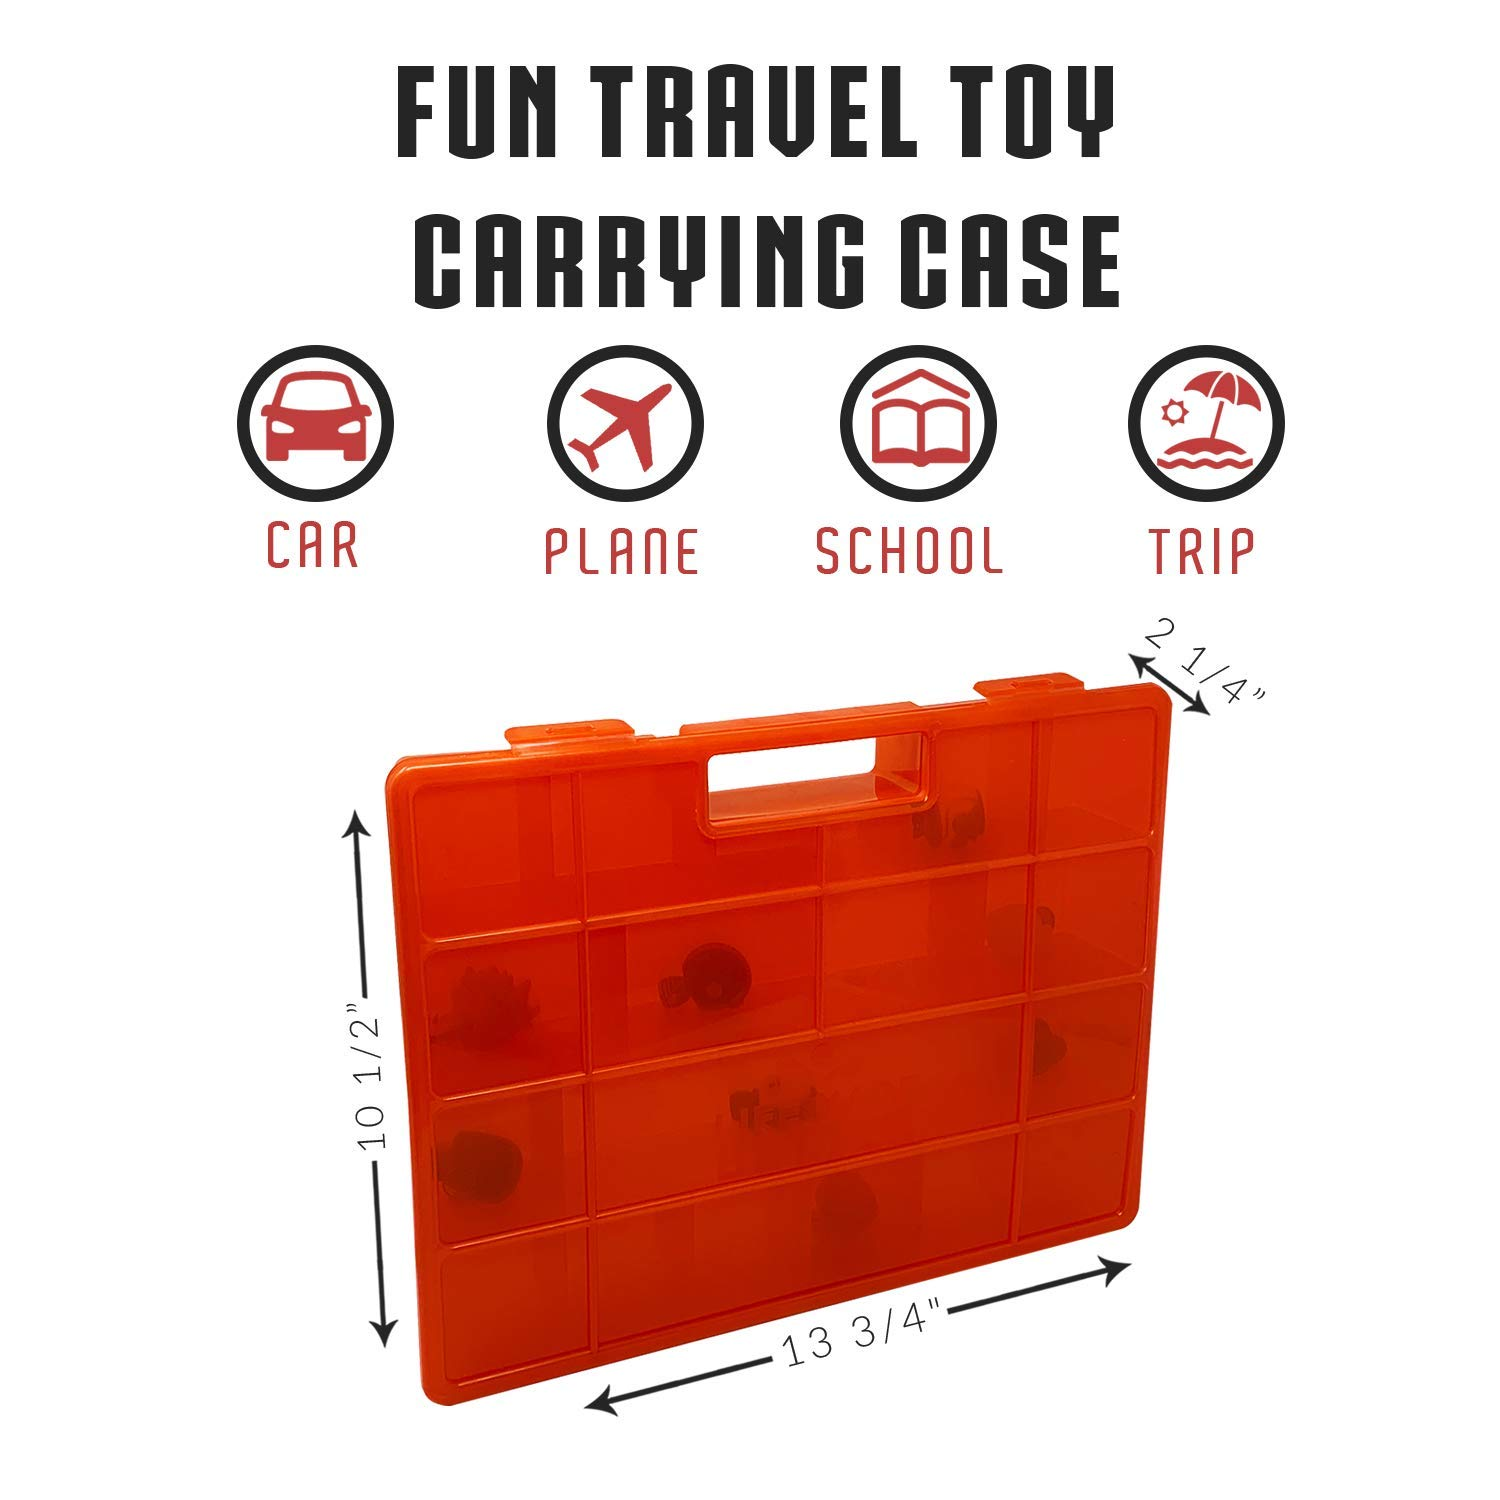 not Made by Wild Kratts Life Made Better Newly Designed Toy Carrying and Storage Case Compatible with Wild Kratts Toys